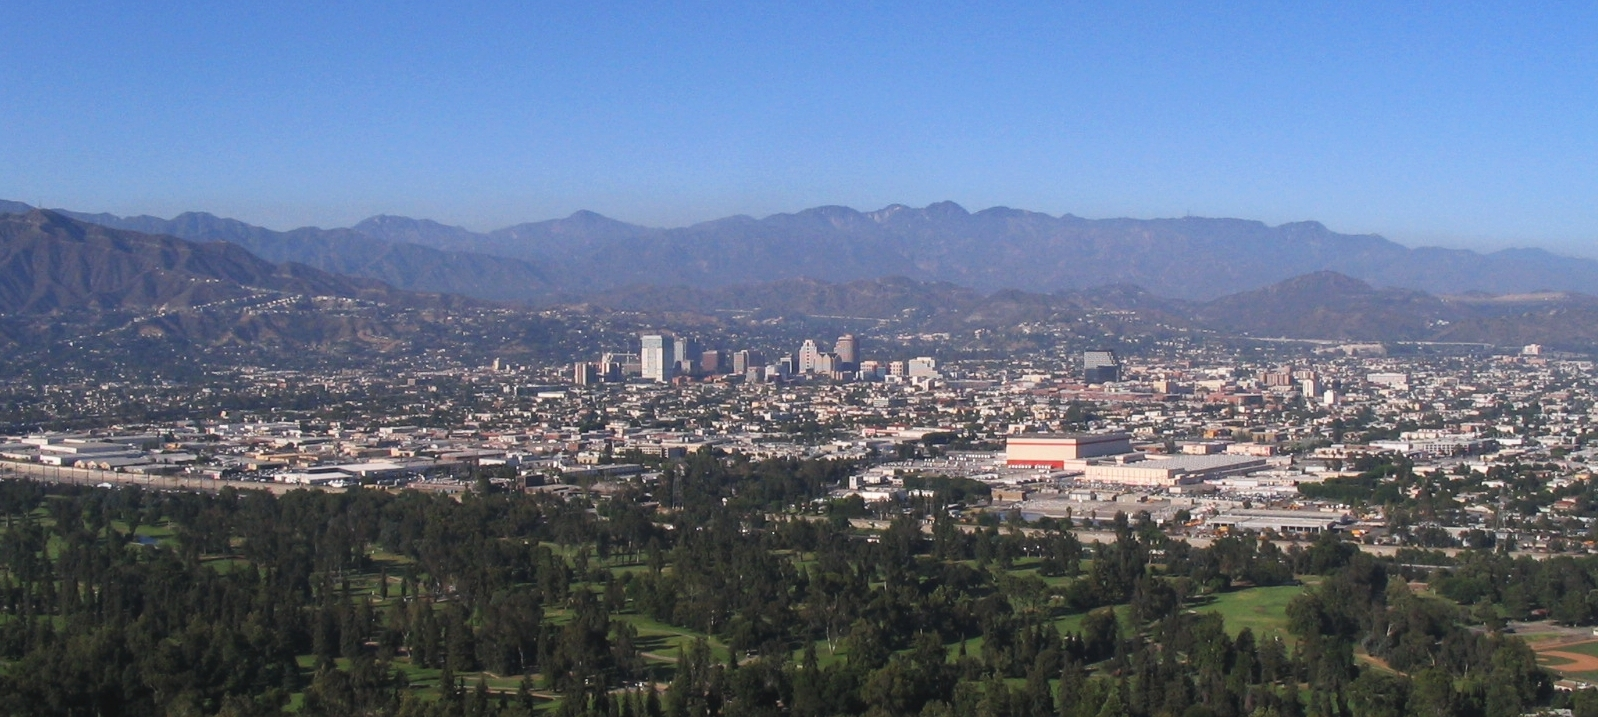 Glendale Ca City Transfer Tax On Sales Of Real Property